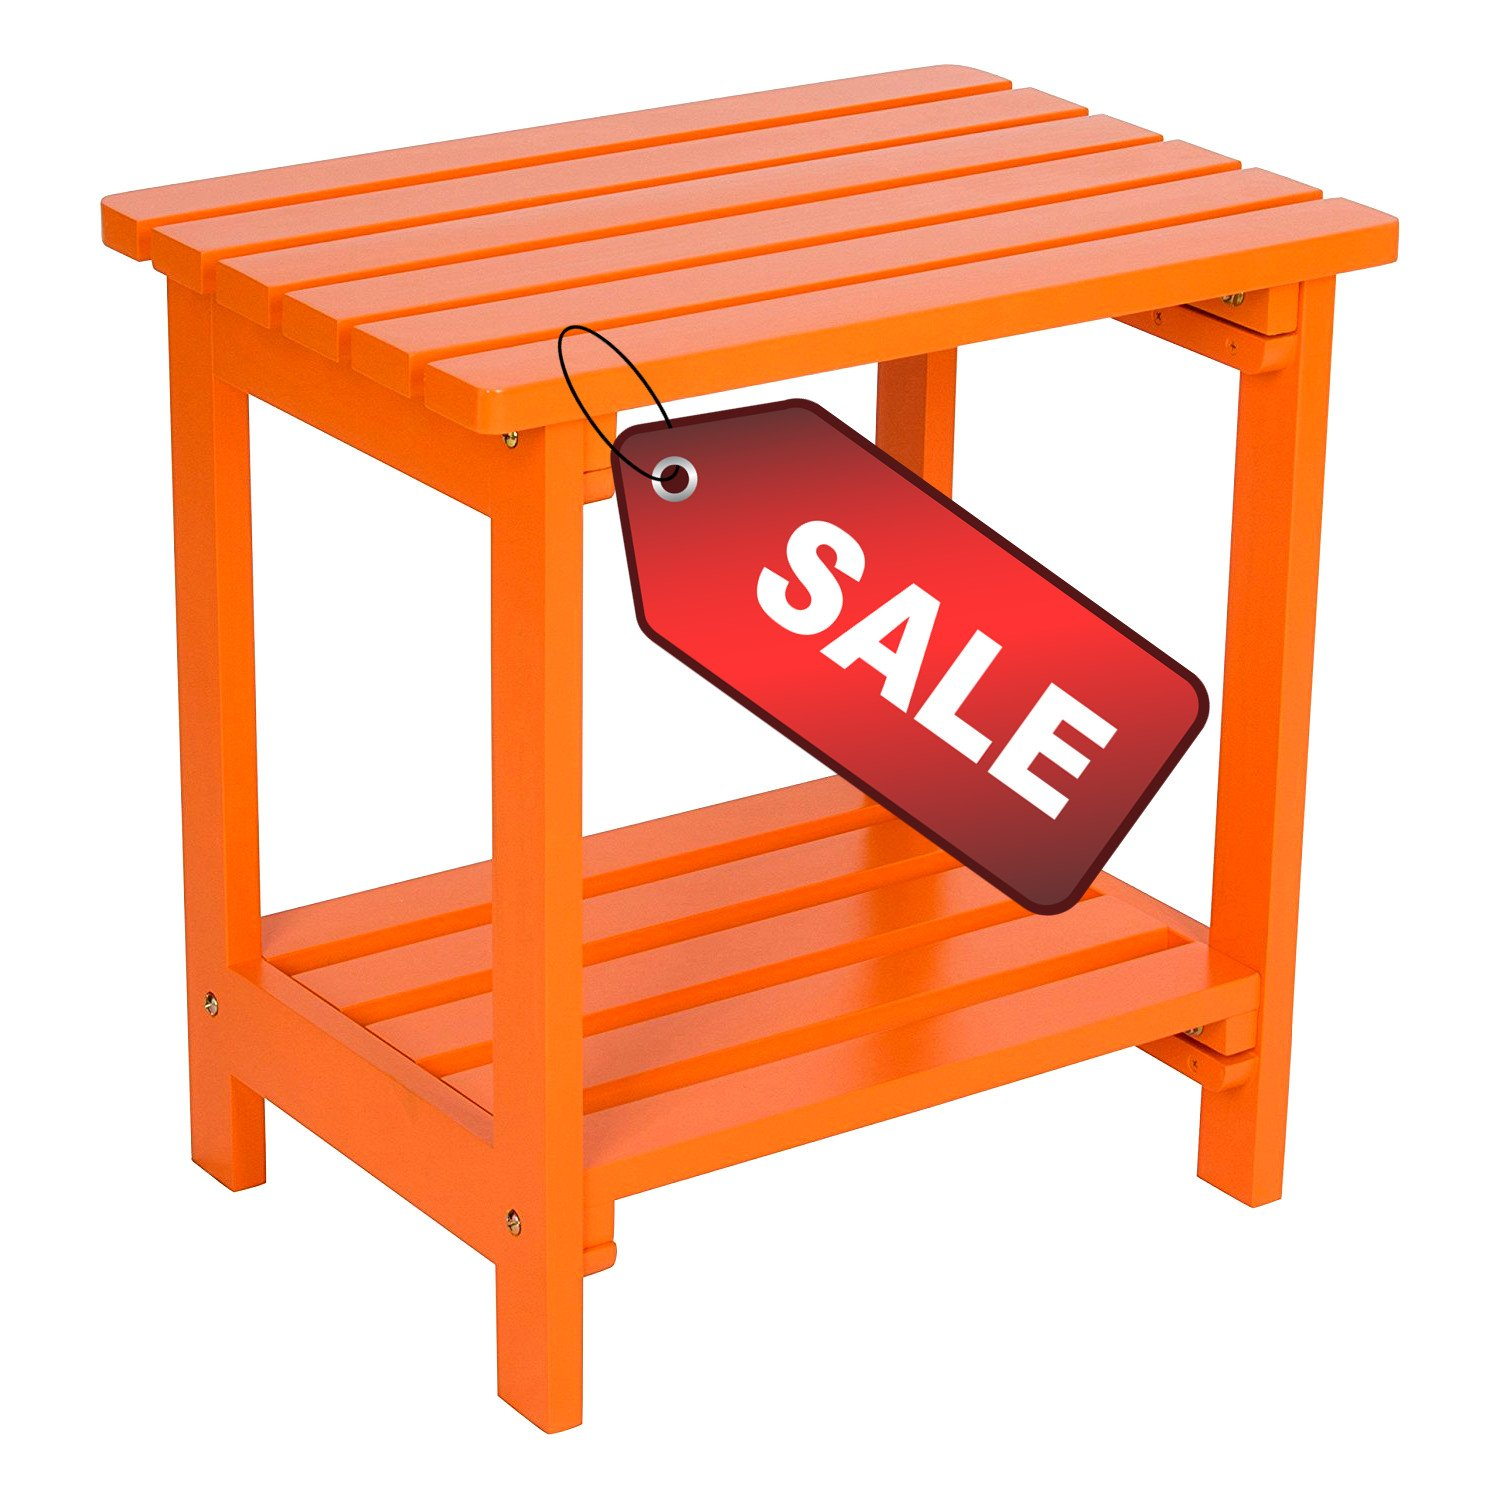 tier patio table small side square outdoor orange wooden water weather rust resistant stylish indoor furniture ebook lounge chairs bunnings console living room end tables setting